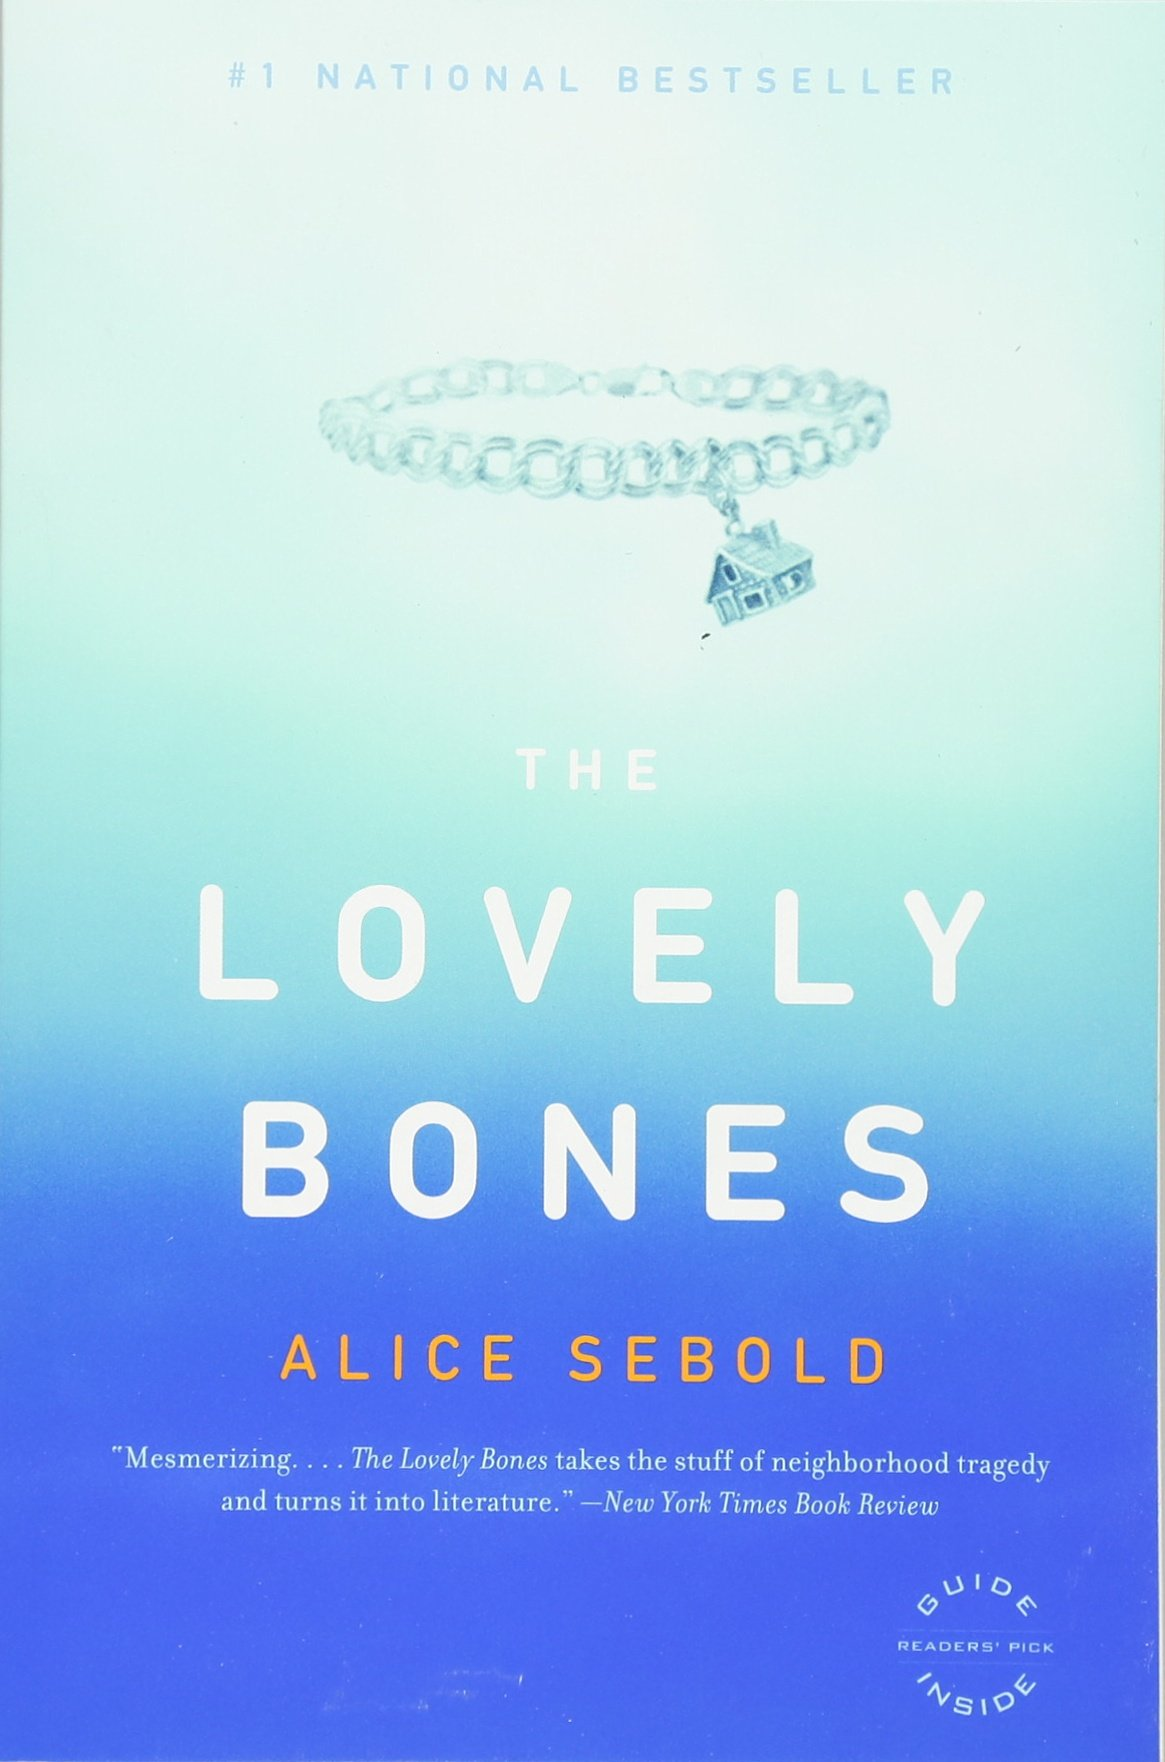 Cover of The Lovely Bones - a charm bracelet on a blue background